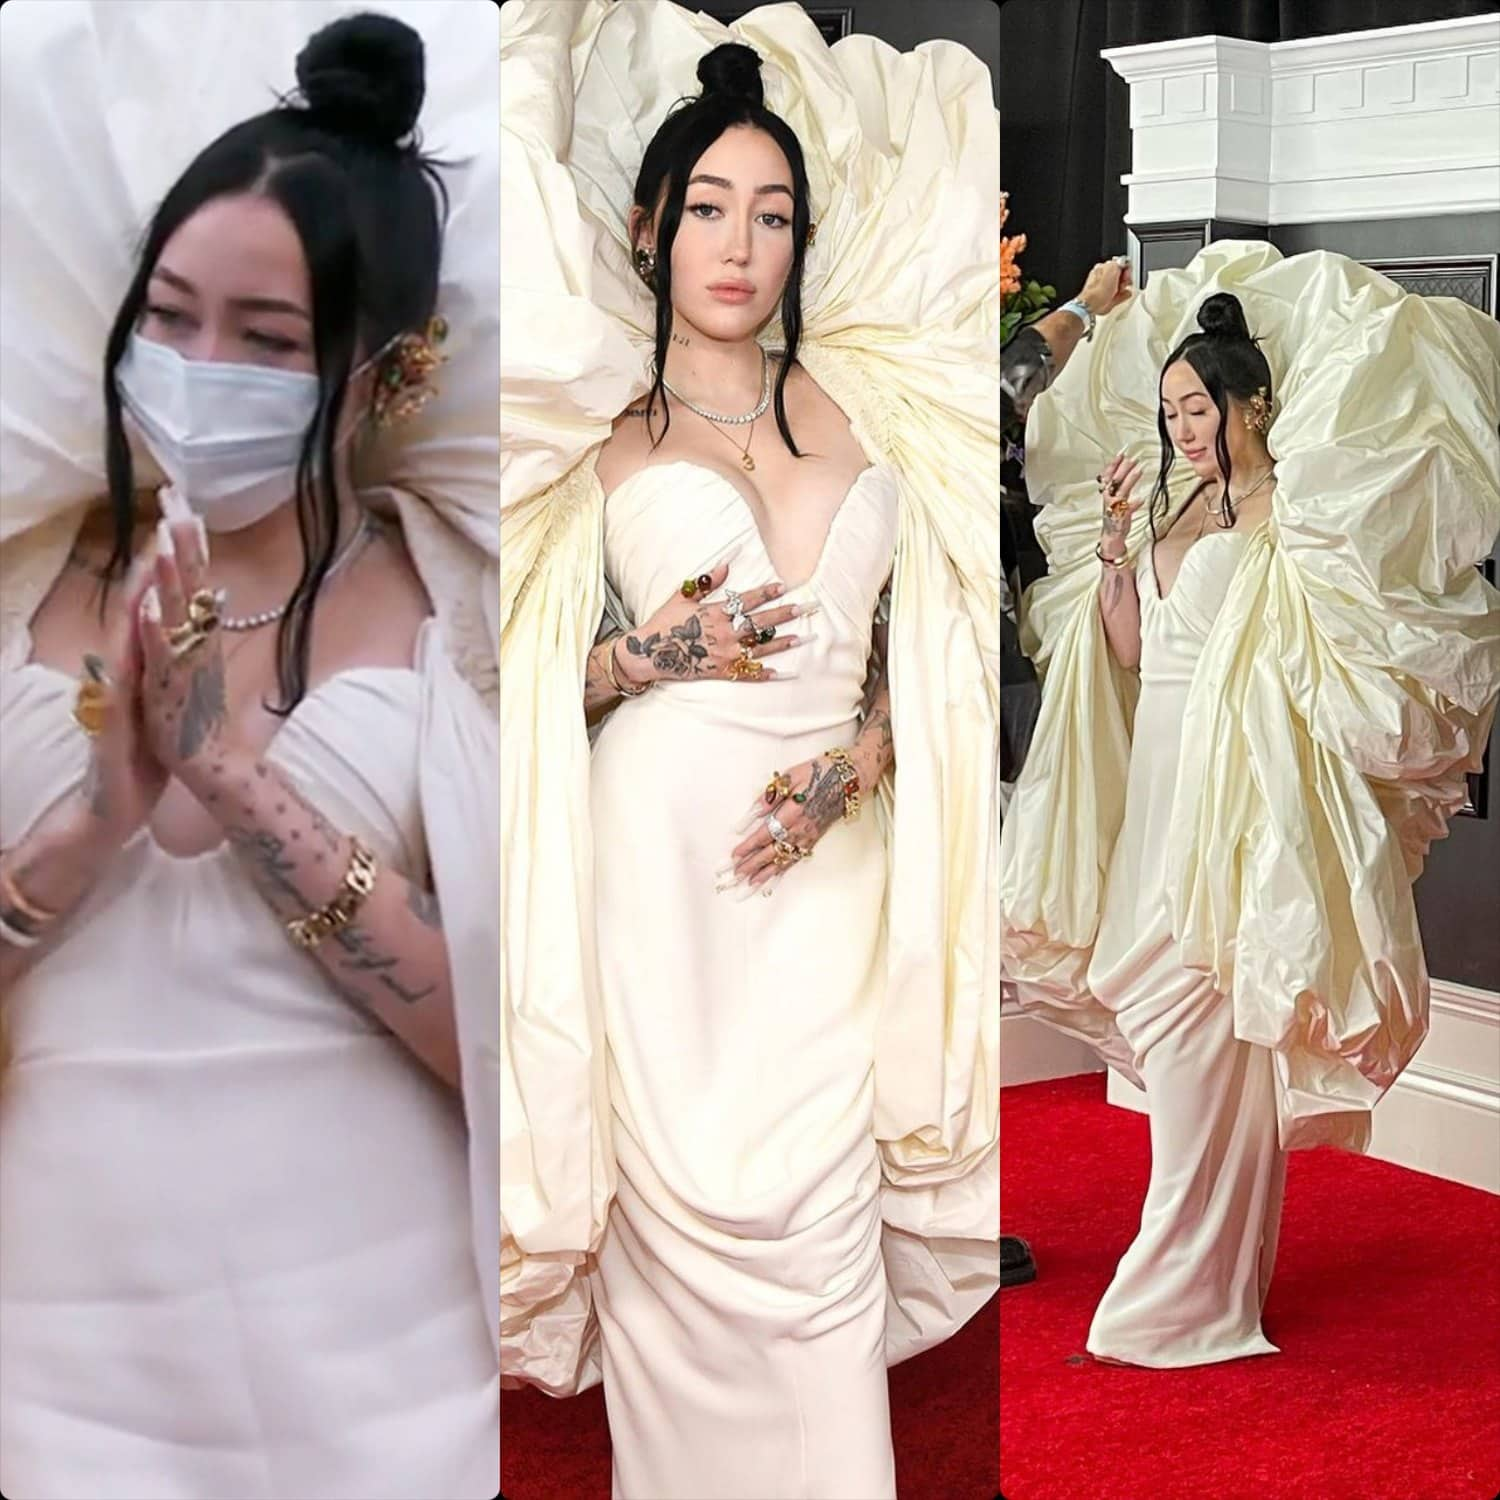 Noah Cyrus in Schiaparelli by Daniel Roseberry at Grammy Awards 2021 by RUNWAY MAGAZINE